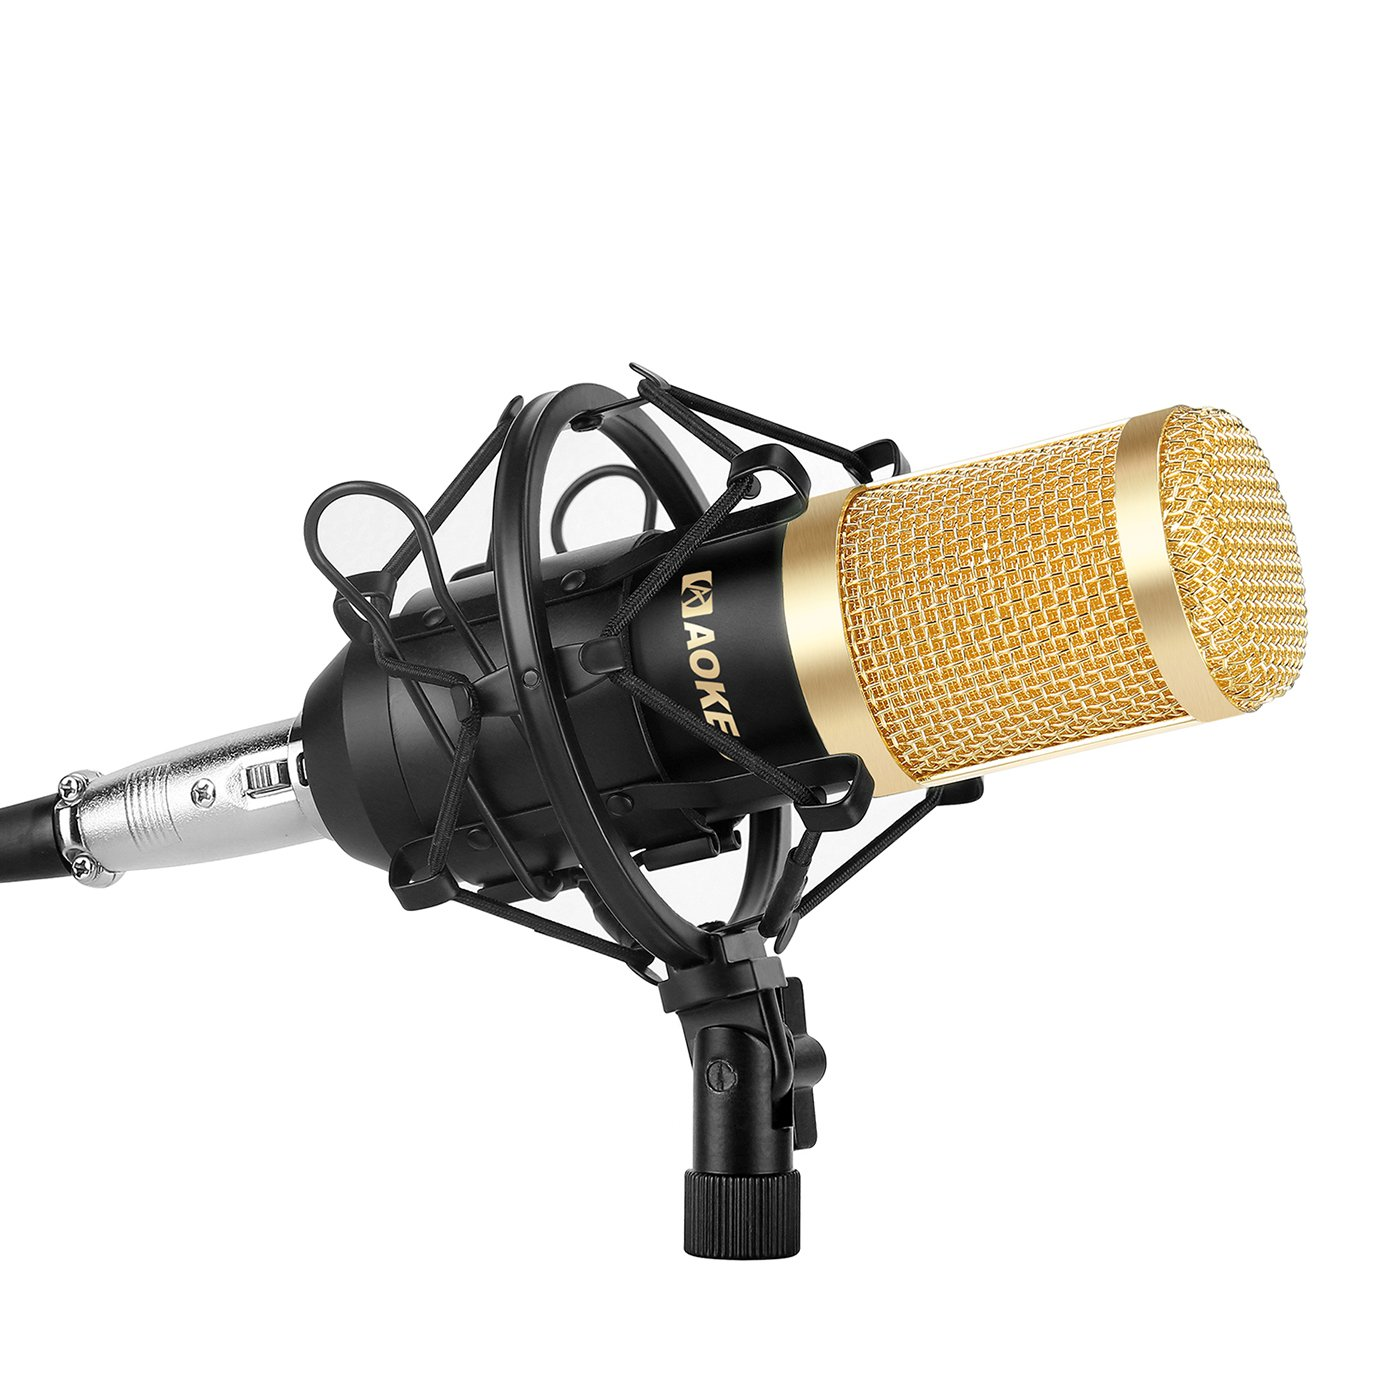 Aokeo AK-80 Professional Studio Recording Condenser Microphone Plug and Play Mic, Cardioid Pickup, Compatible Phone, Computer, Laptop,Youtube, Podcasting,Twitch, Skype,MSN,Gaming,Singing (Black)